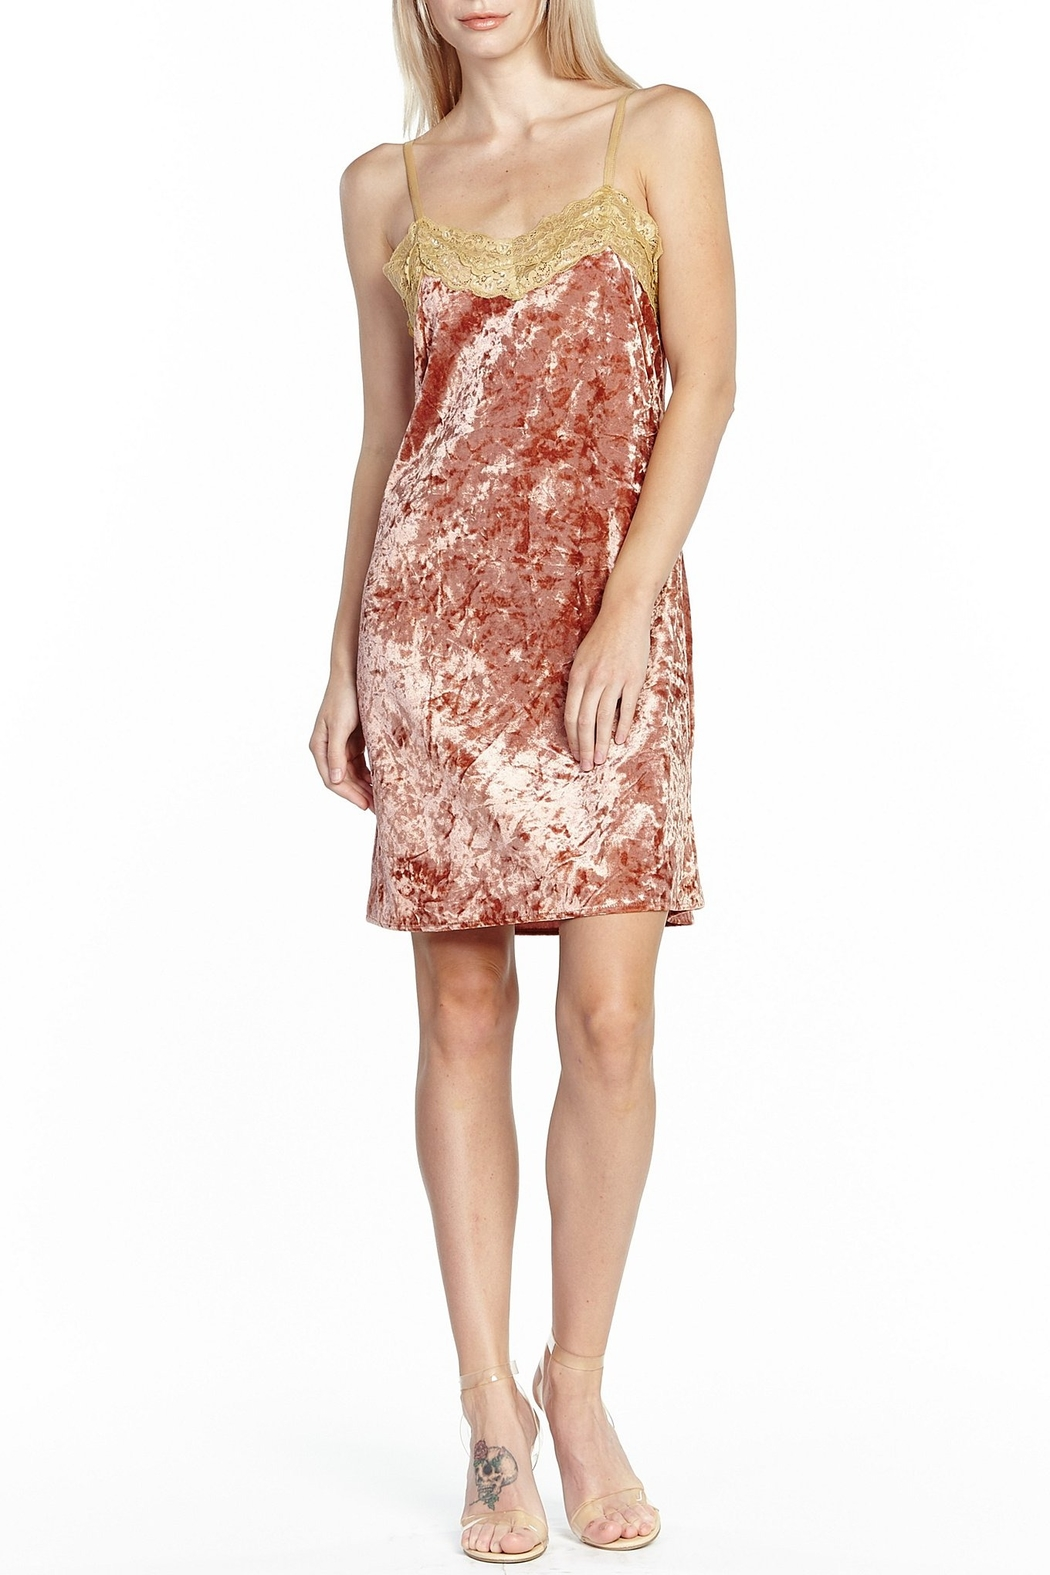 Aratta Without You Velvet Mini Dress - Front Cropped Image